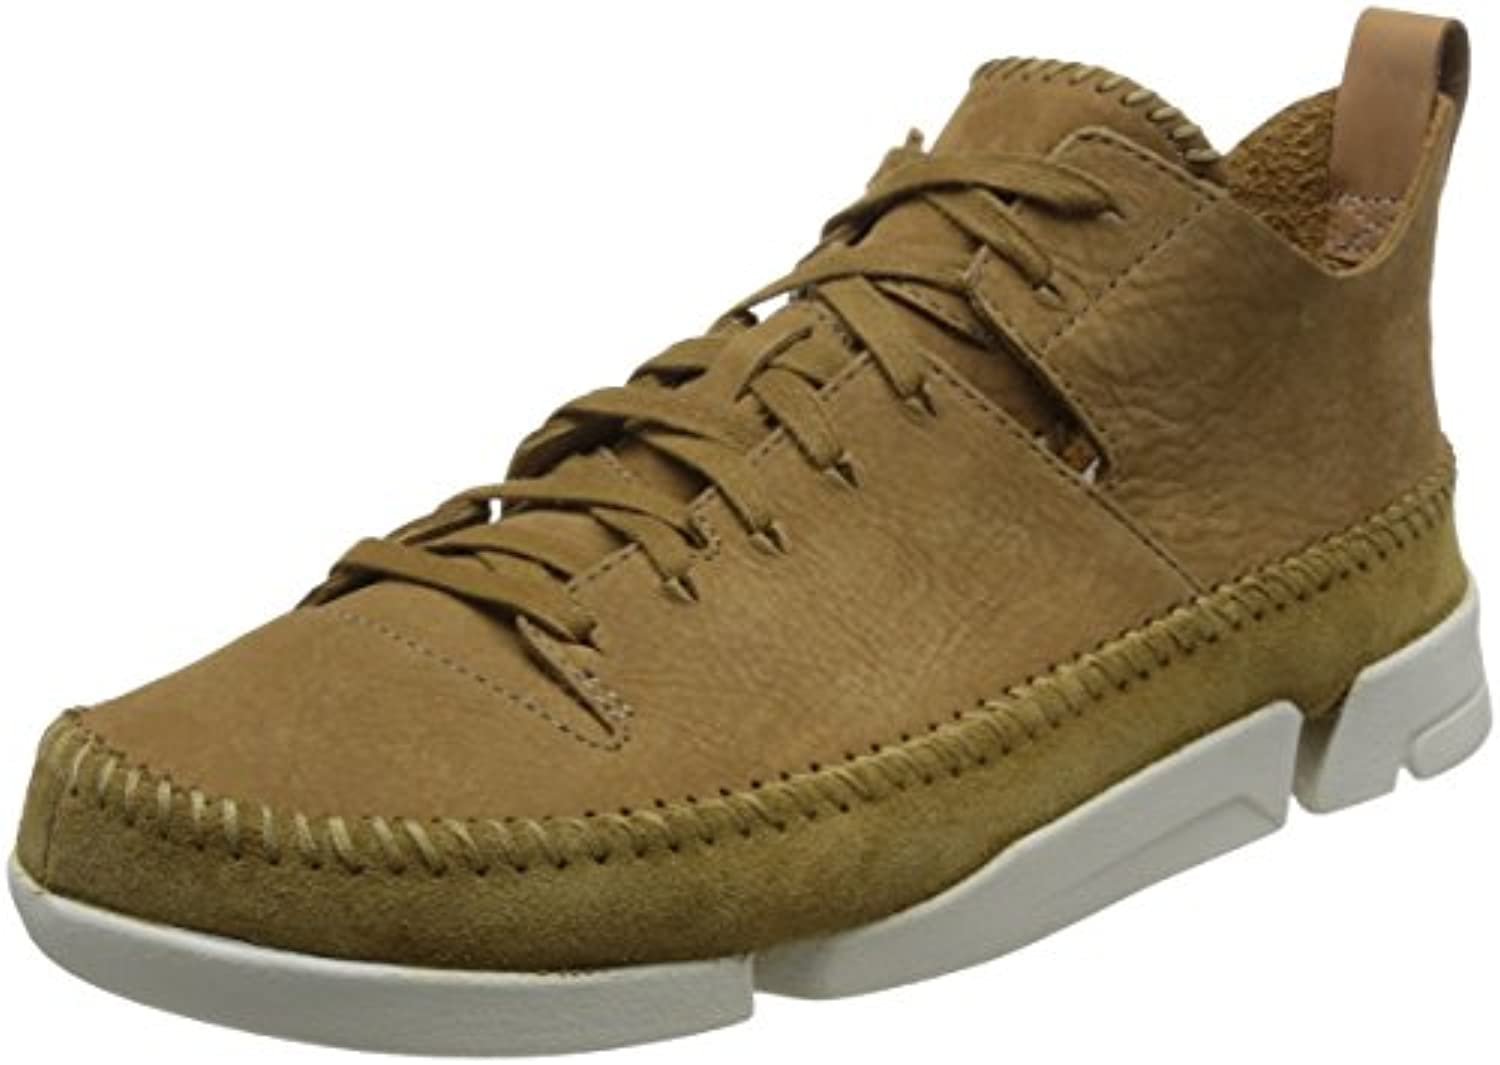 Clarks Originals Trigenic Flex Herren Sneakers